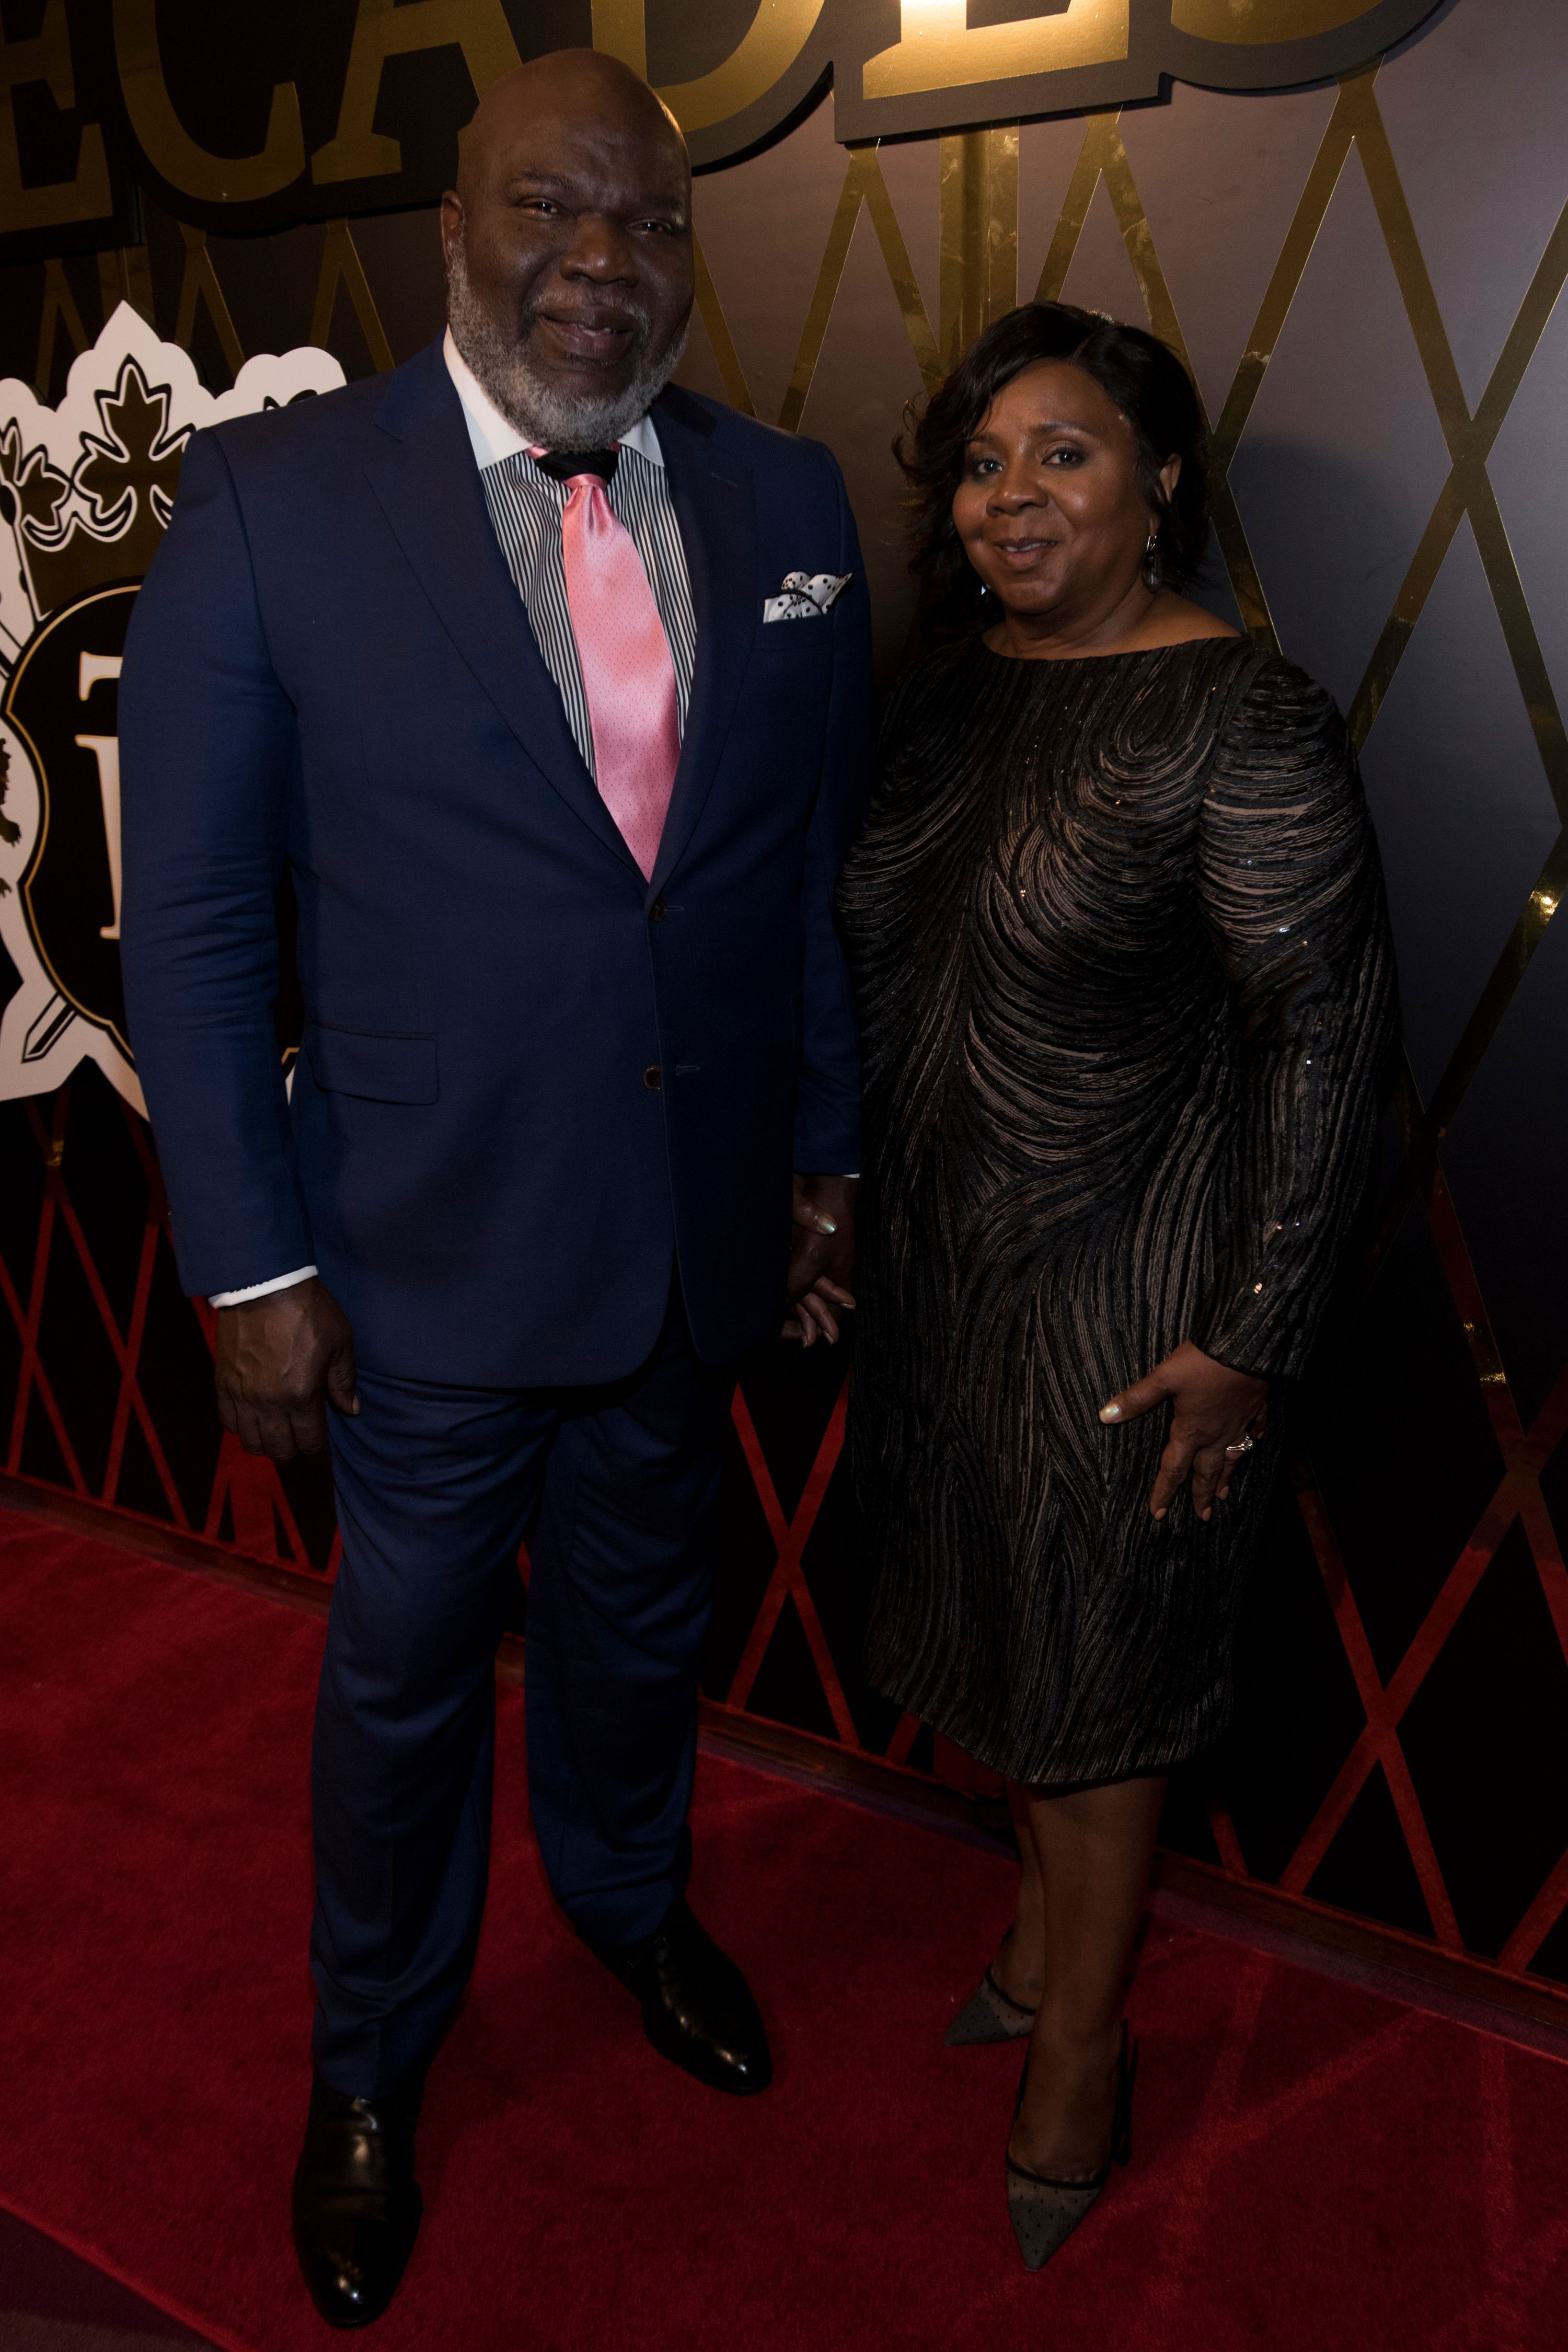 Bishop T.D. Jakes and his wife Serita Jakes pose for a photo at Bishop T.D. Jakes' surprise 60th birthday celebration at The Joule Hotel on June 30, 2017 in Dallas, Texas.   Source: Getty Images